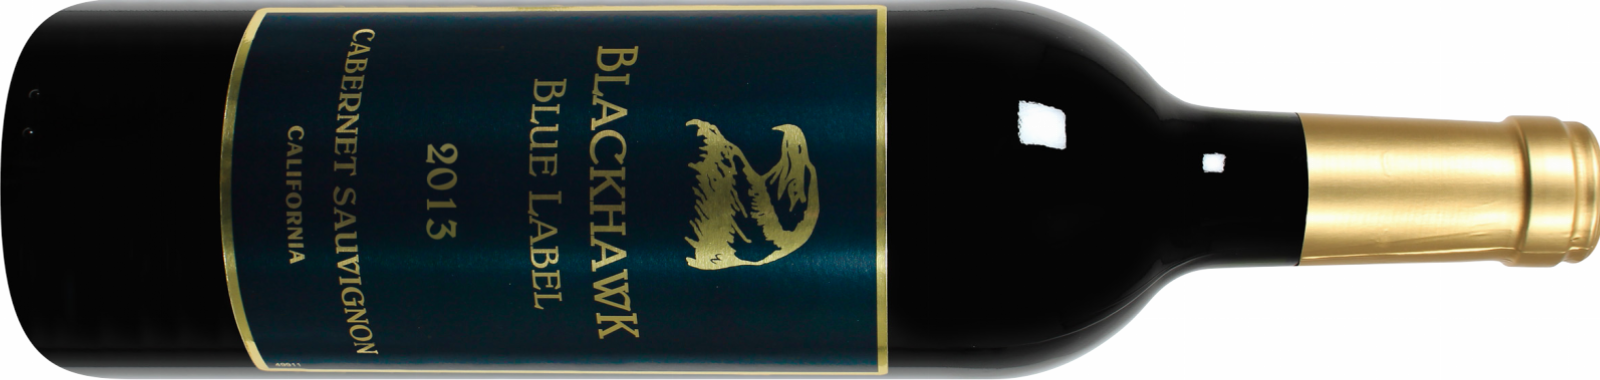 Blackhawk Blue Label Cabernet Sauvignon 2013